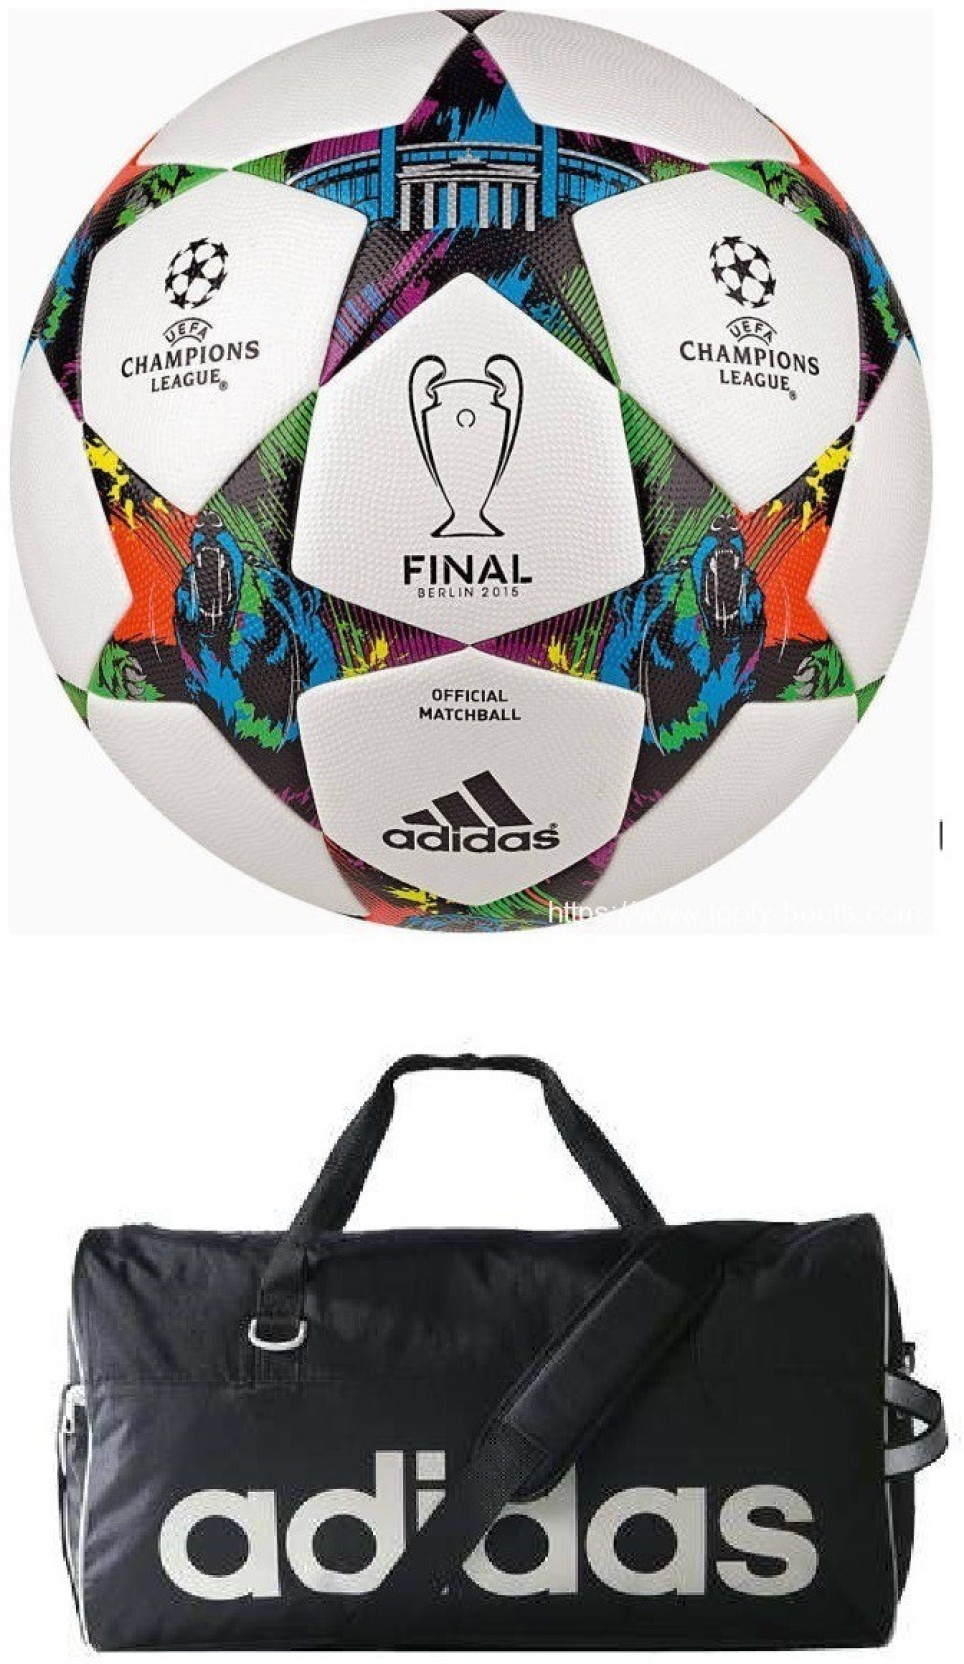 5e8191f0a06b Retail World UEFA Champions League Multistar Football (Size-5) with Gym  Duffle Bag Football Kit